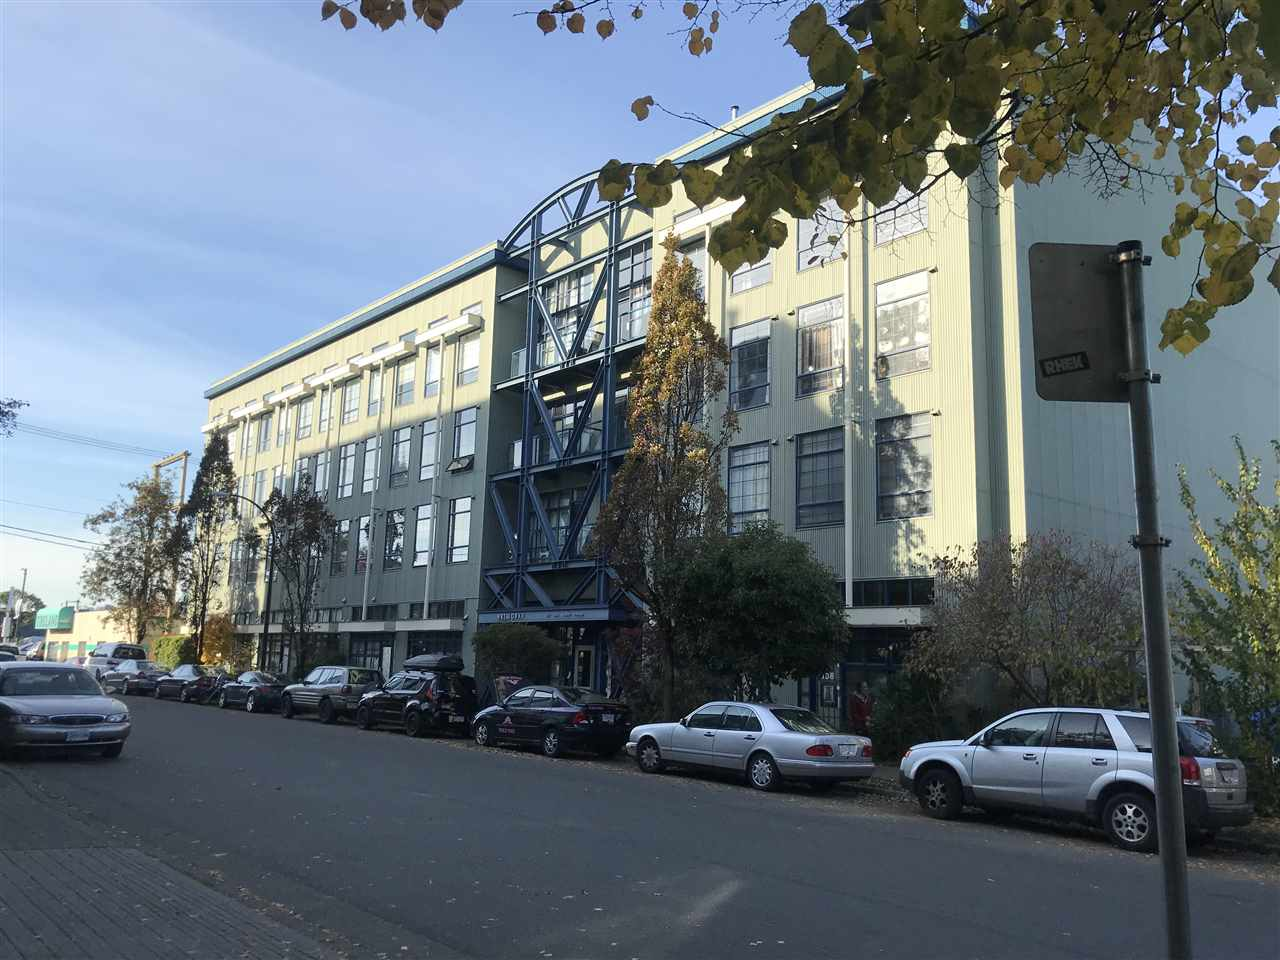 Main Photo: 220 237 E 4TH Avenue in Vancouver: Mount Pleasant VE Condo for sale (Vancouver East)  : MLS® # R2220308